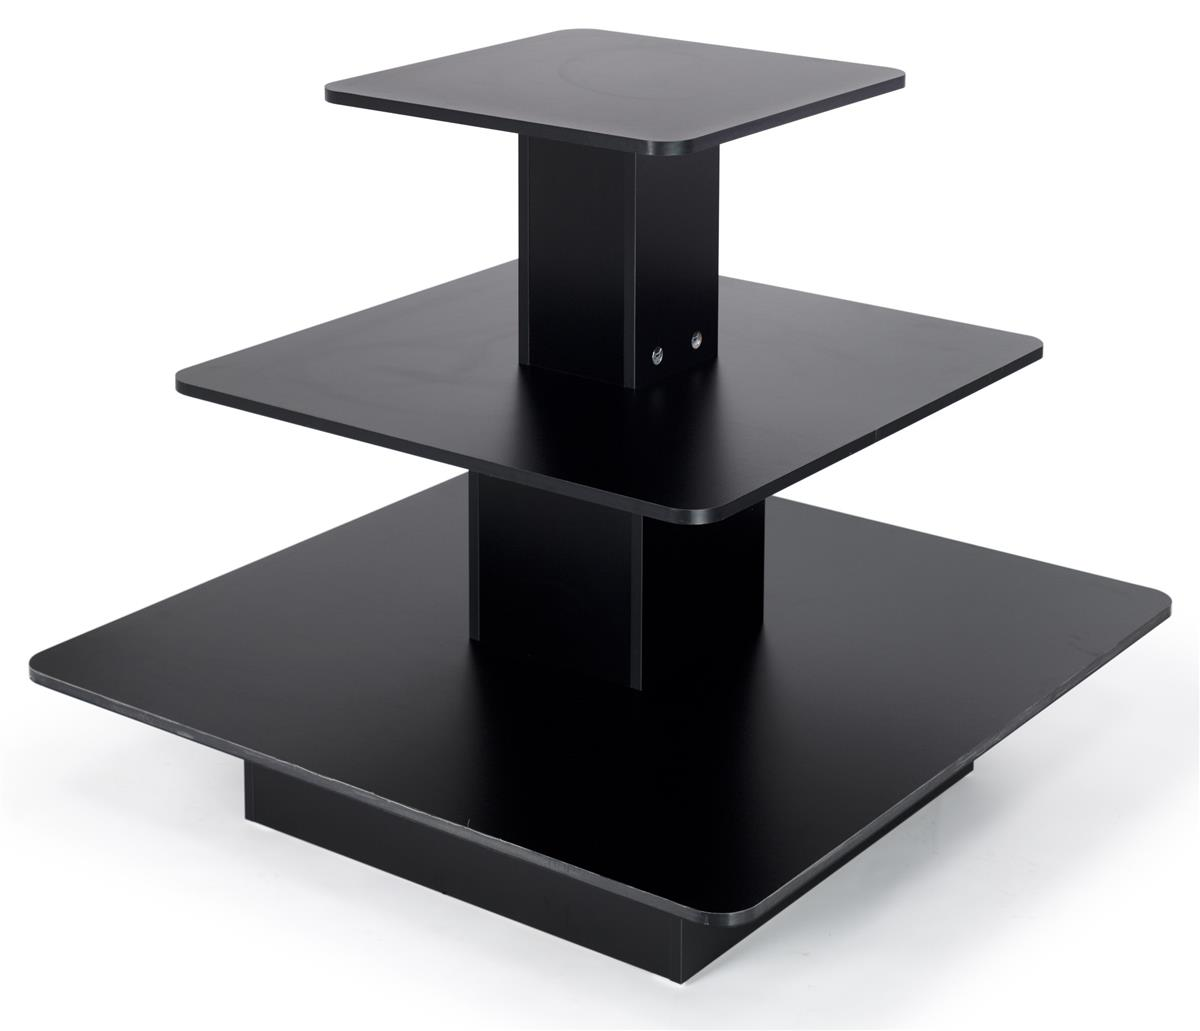 Tiered display bases square